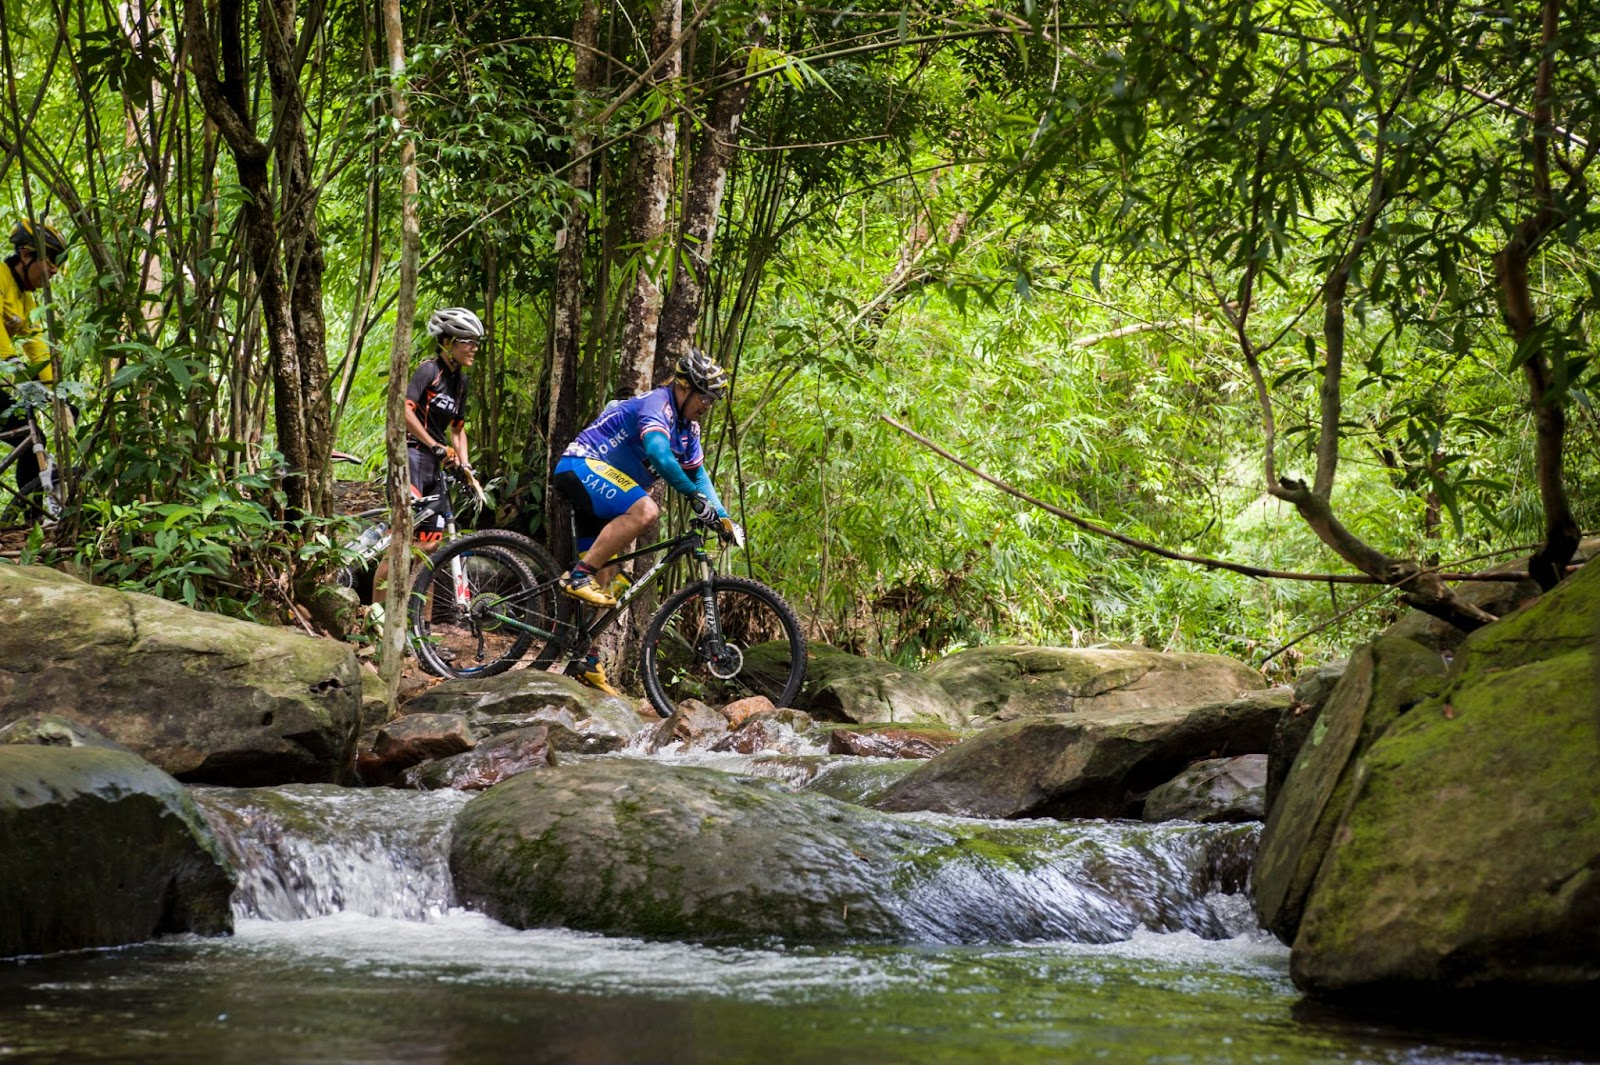 A mountain hike in Thailand can have health benefits